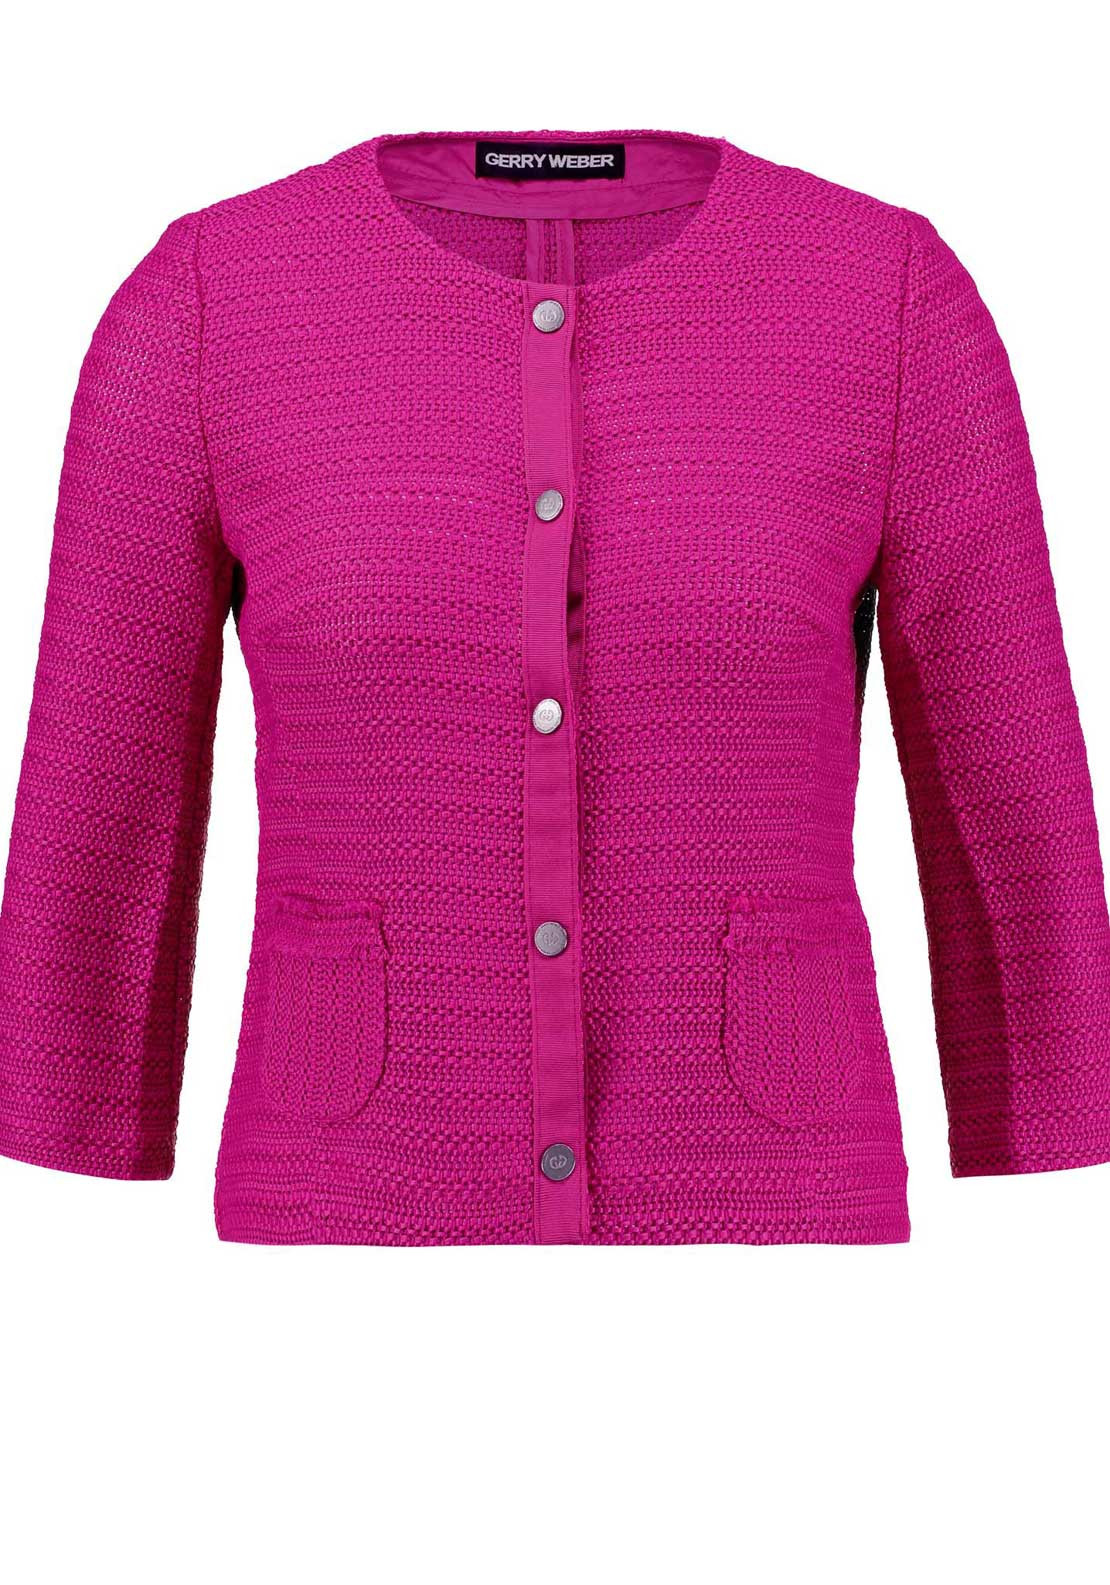 Gerry Weber Embossed Knit Jacket, Pink